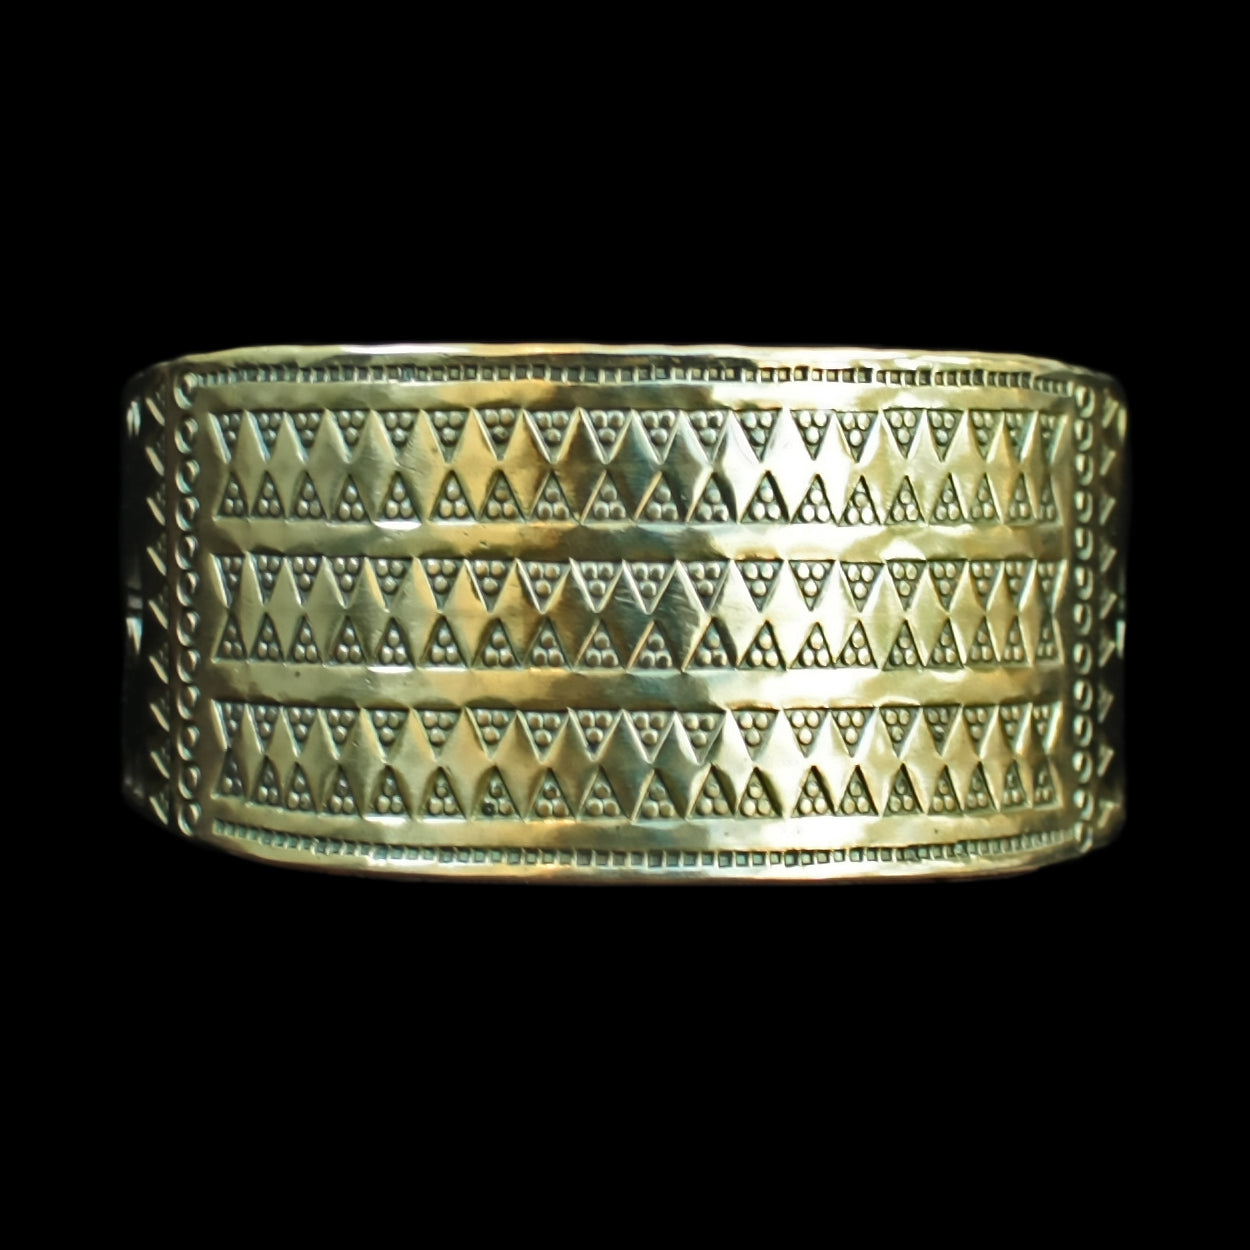 Viking Cuff Bracelet in Solid Brass with Embossed Viking Design